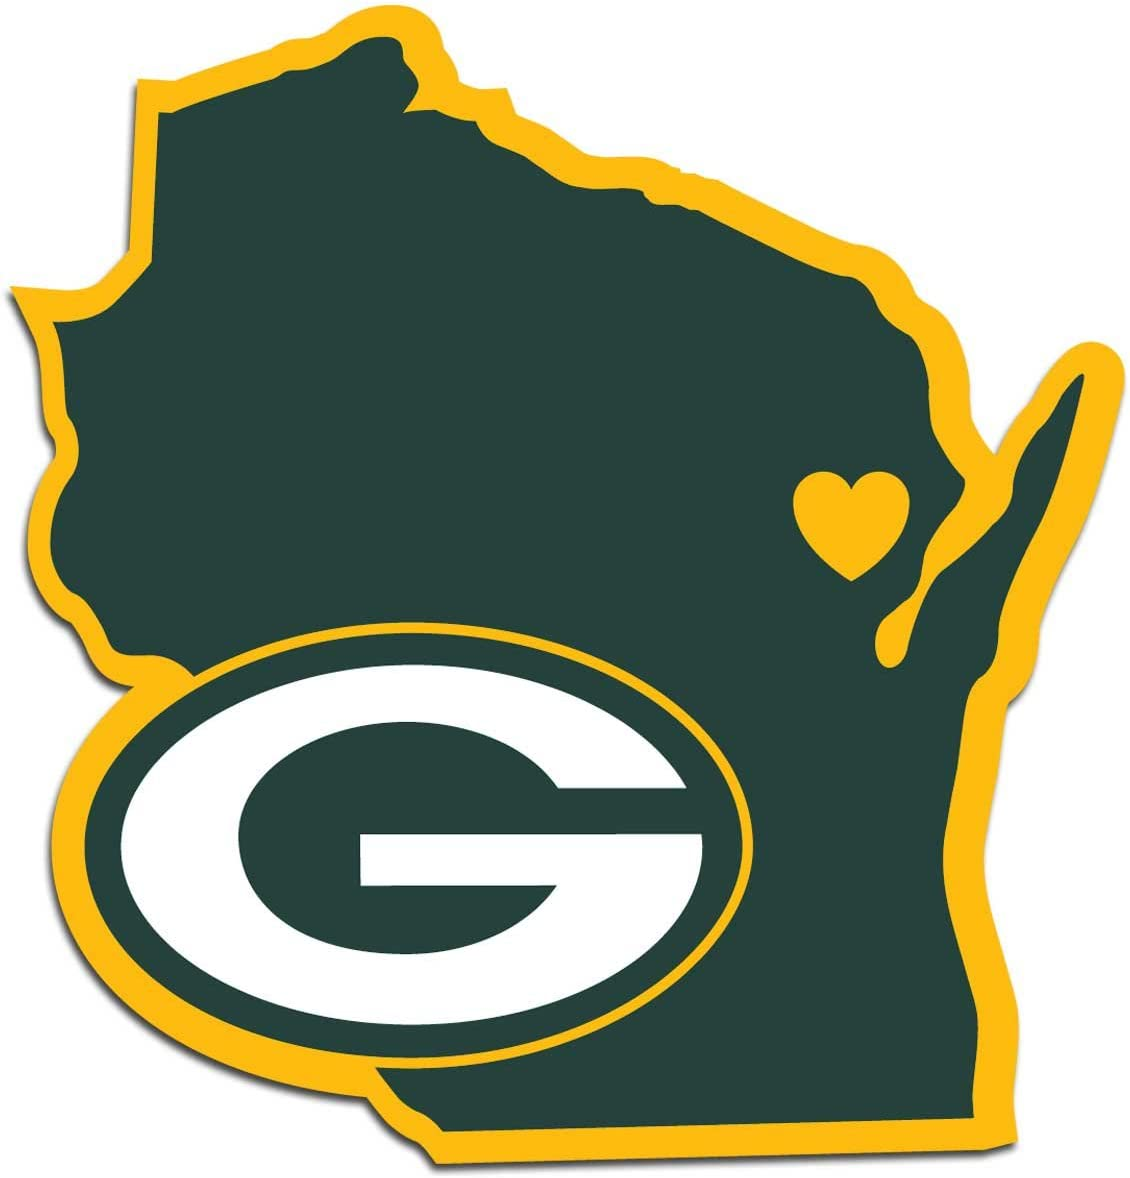 NFL Siskiyou Sports Fan Shop Green Bay Packers Home State Decal One Size Team Color